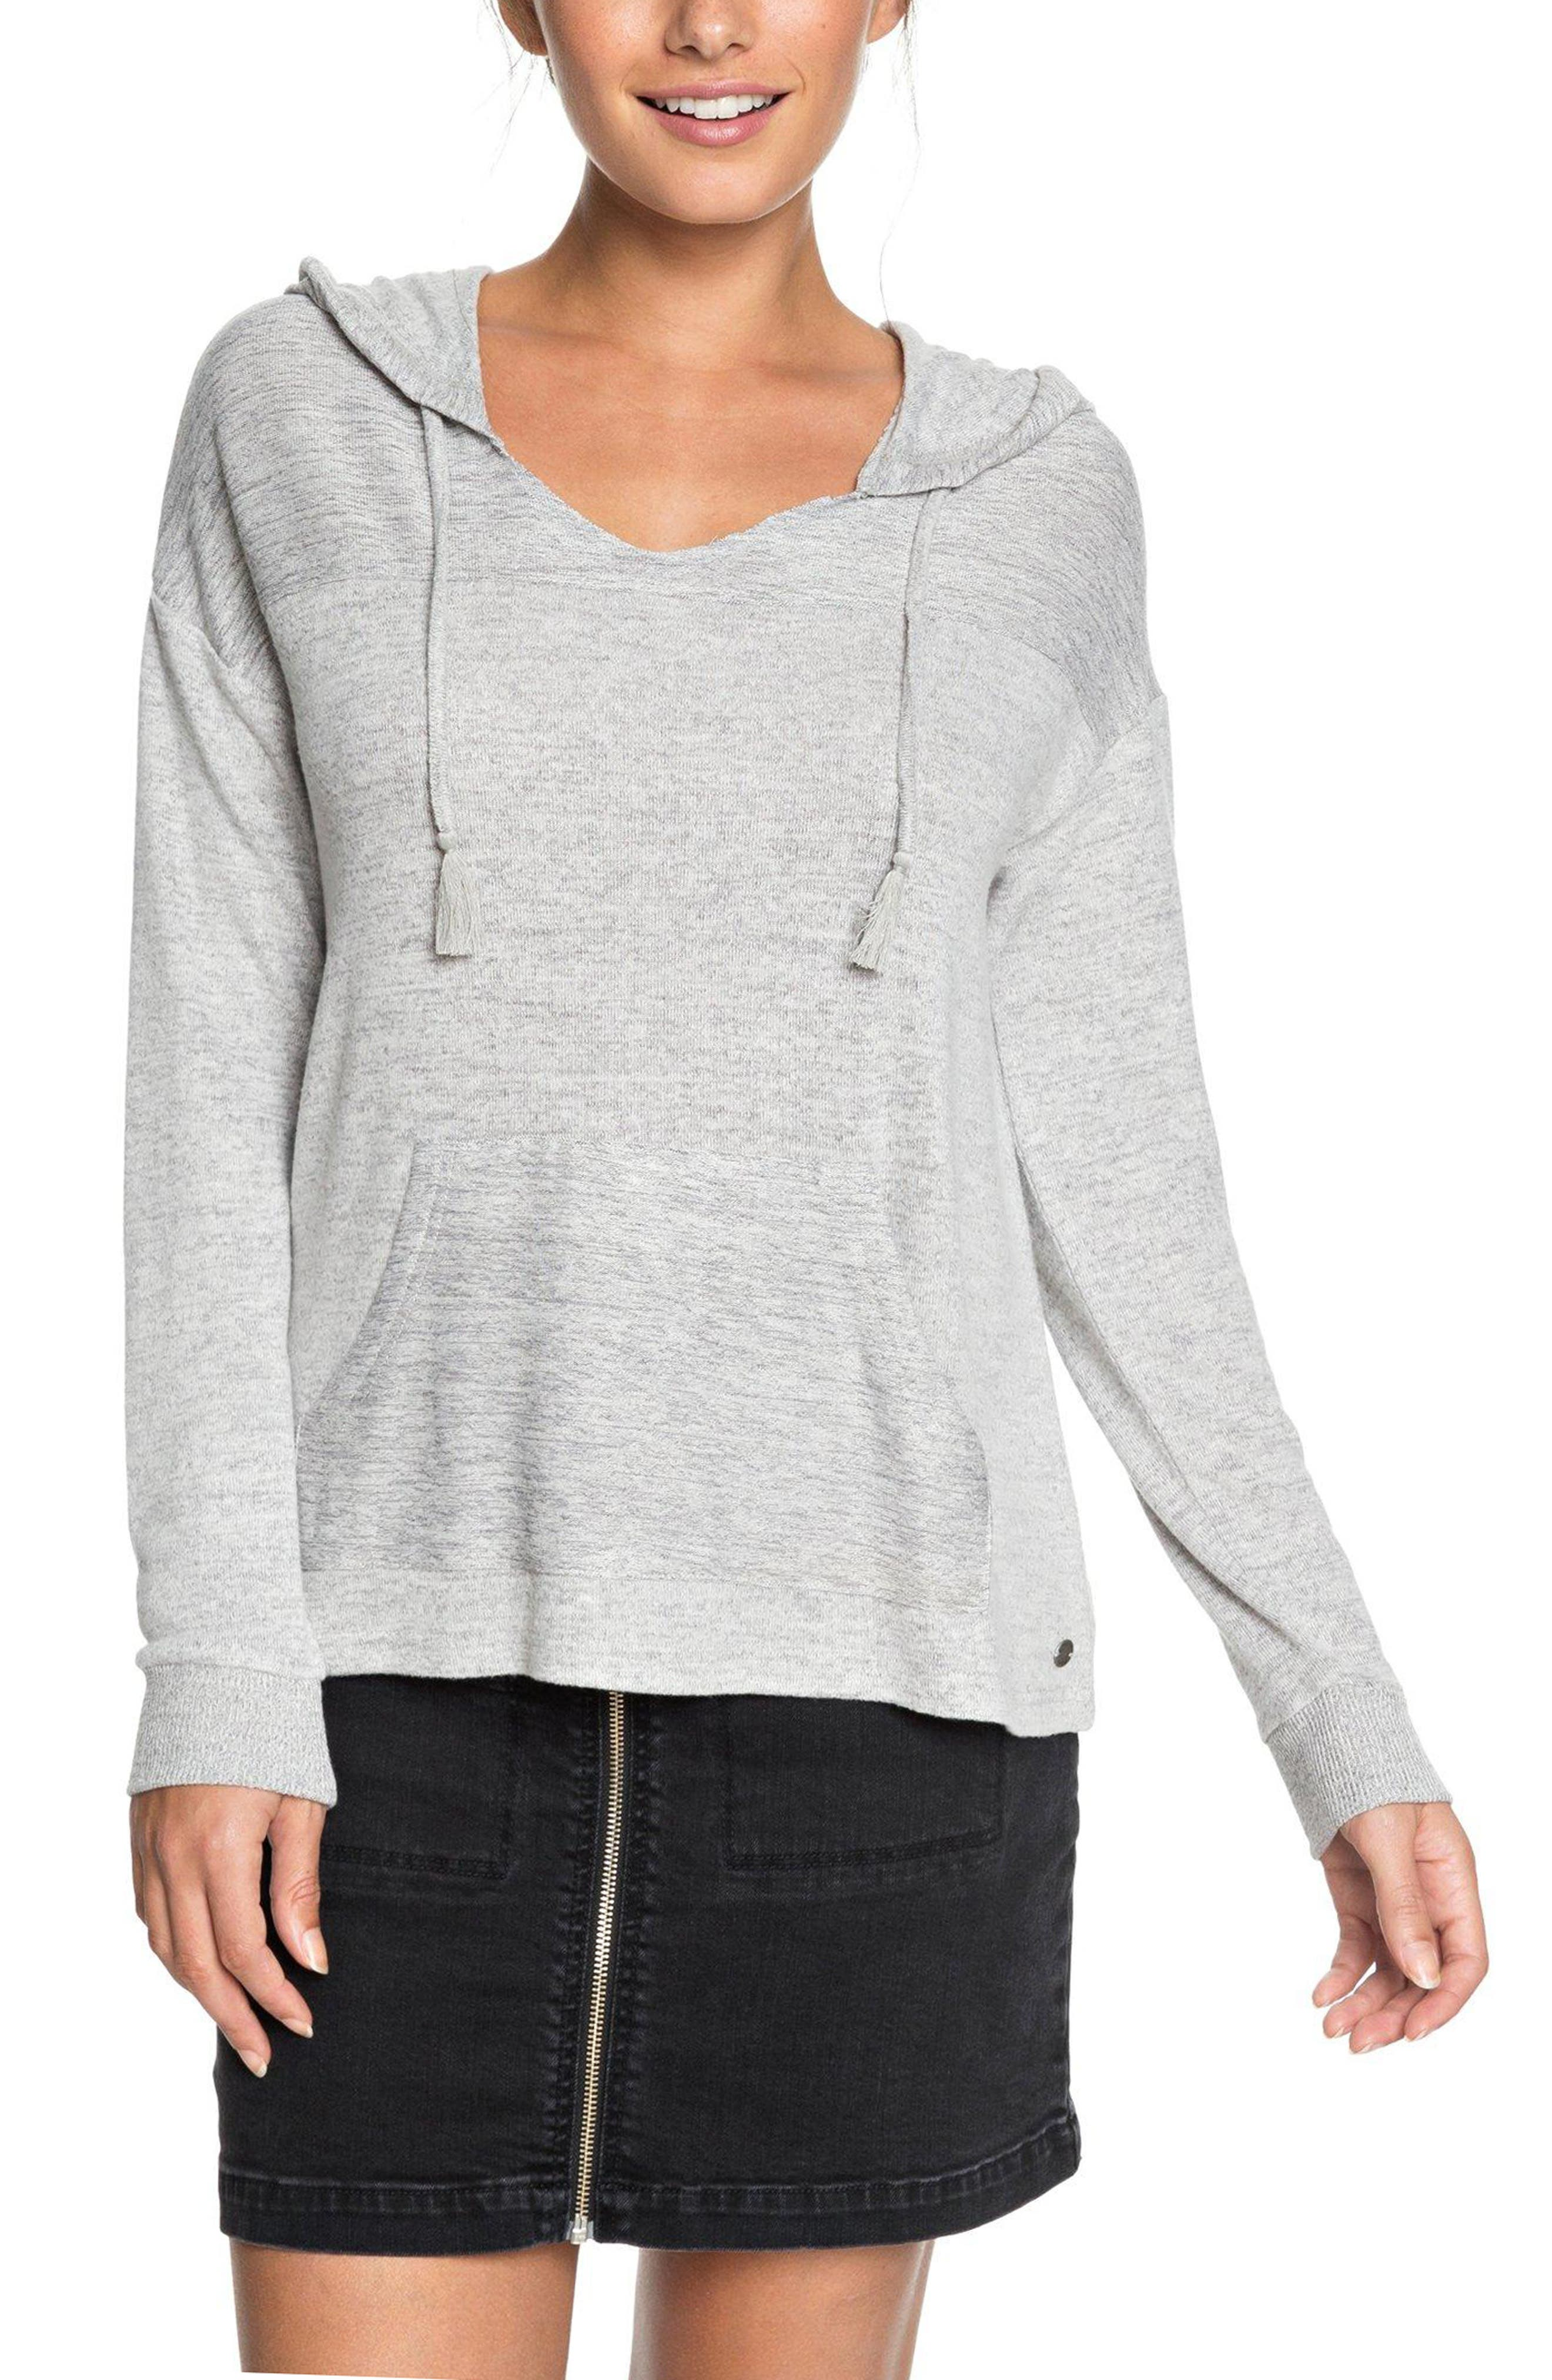 Love in the Sky Hoodie,                             Main thumbnail 1, color,                             020